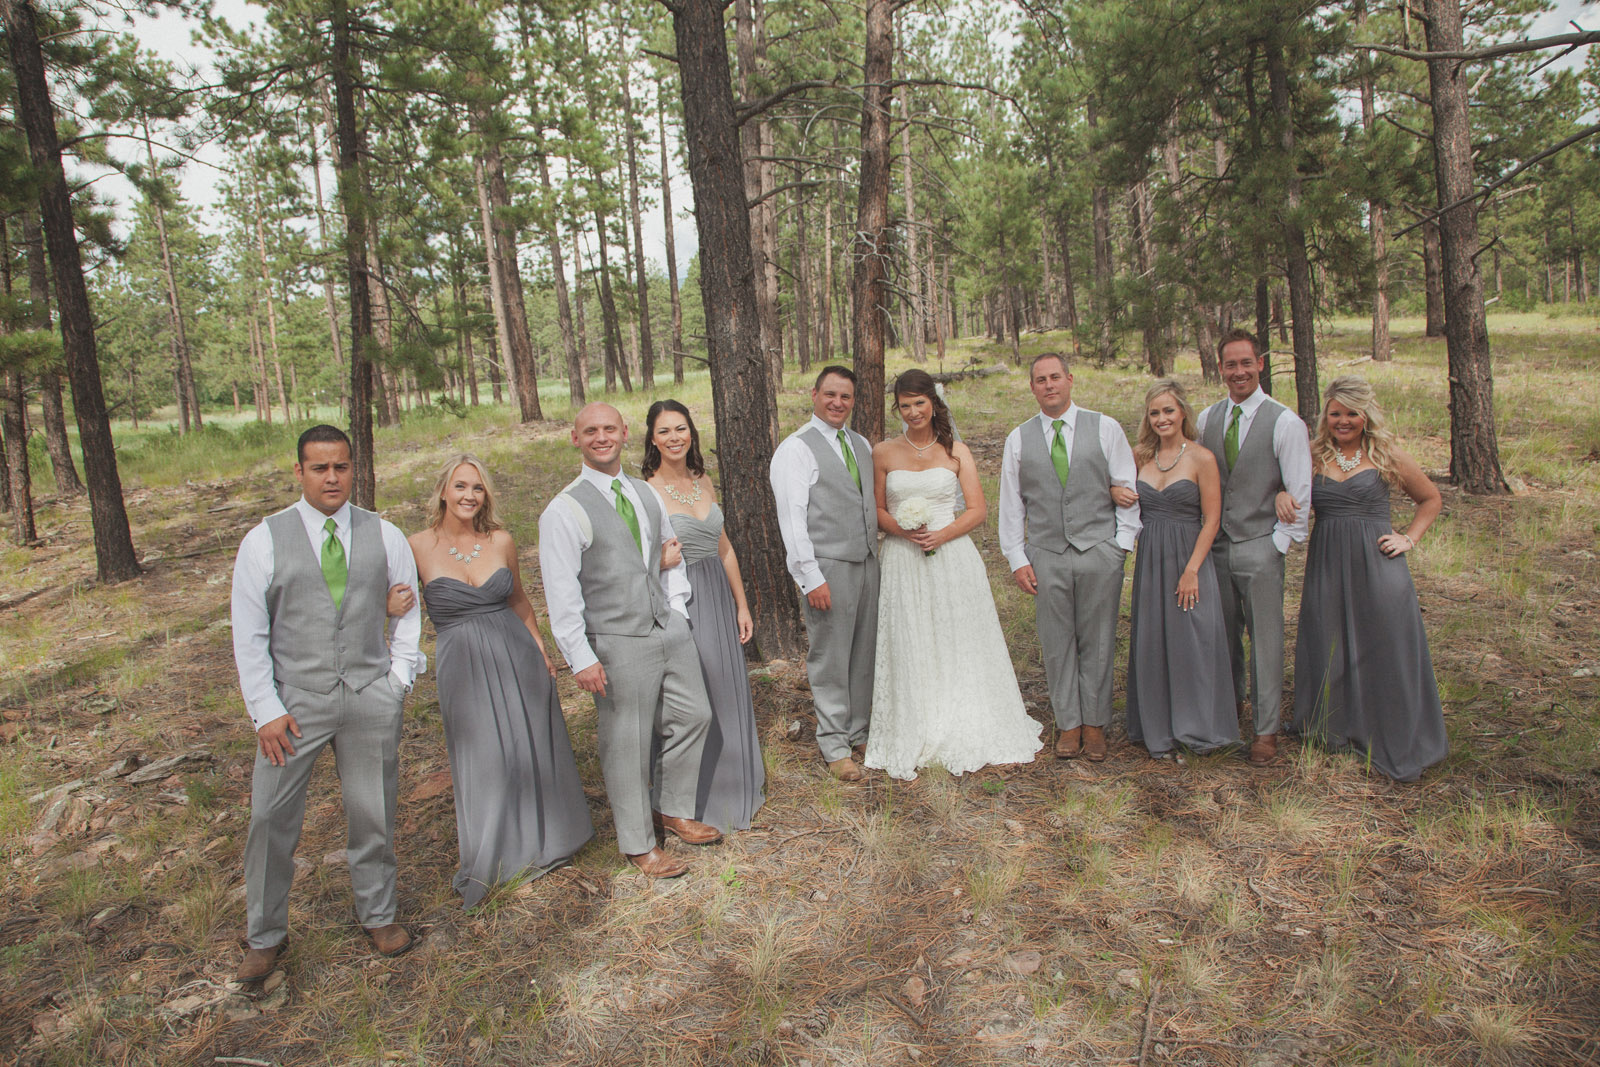 096-groom-wedding-cabin-woods-forest-pictures-photos-dress-photography-portraits-wedding-party-party